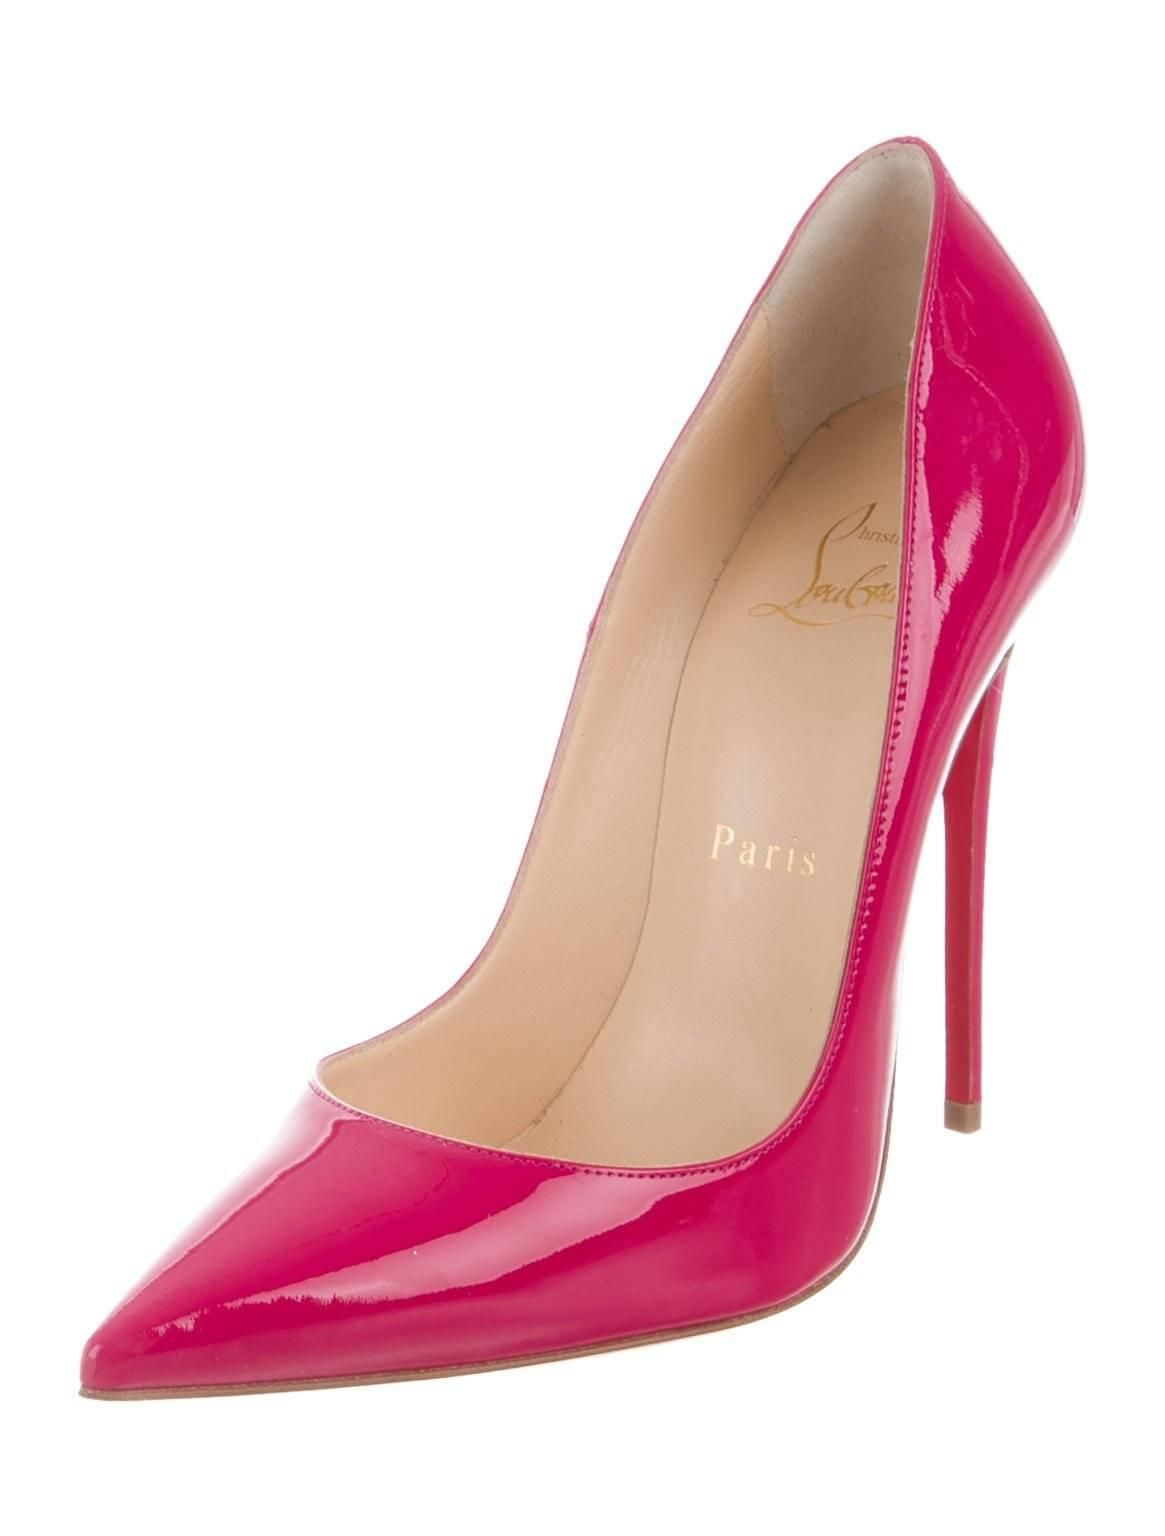 cb903a878 Christian Louboutin New Fuchsia Patent Leather So Kate High Heels Pumps For  Sale at 1stdibs